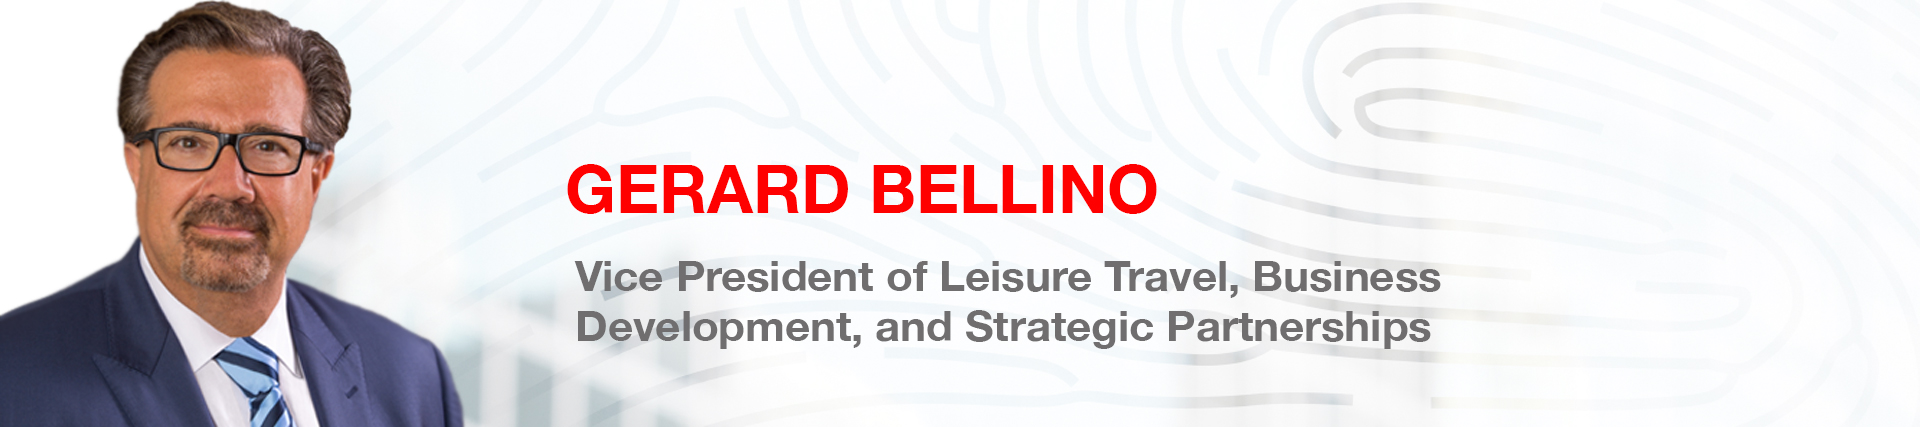 Direct Travel Appoints Gerard Bellino Vice President of Leisure Travel, Business Development, and Strategic Partnerships